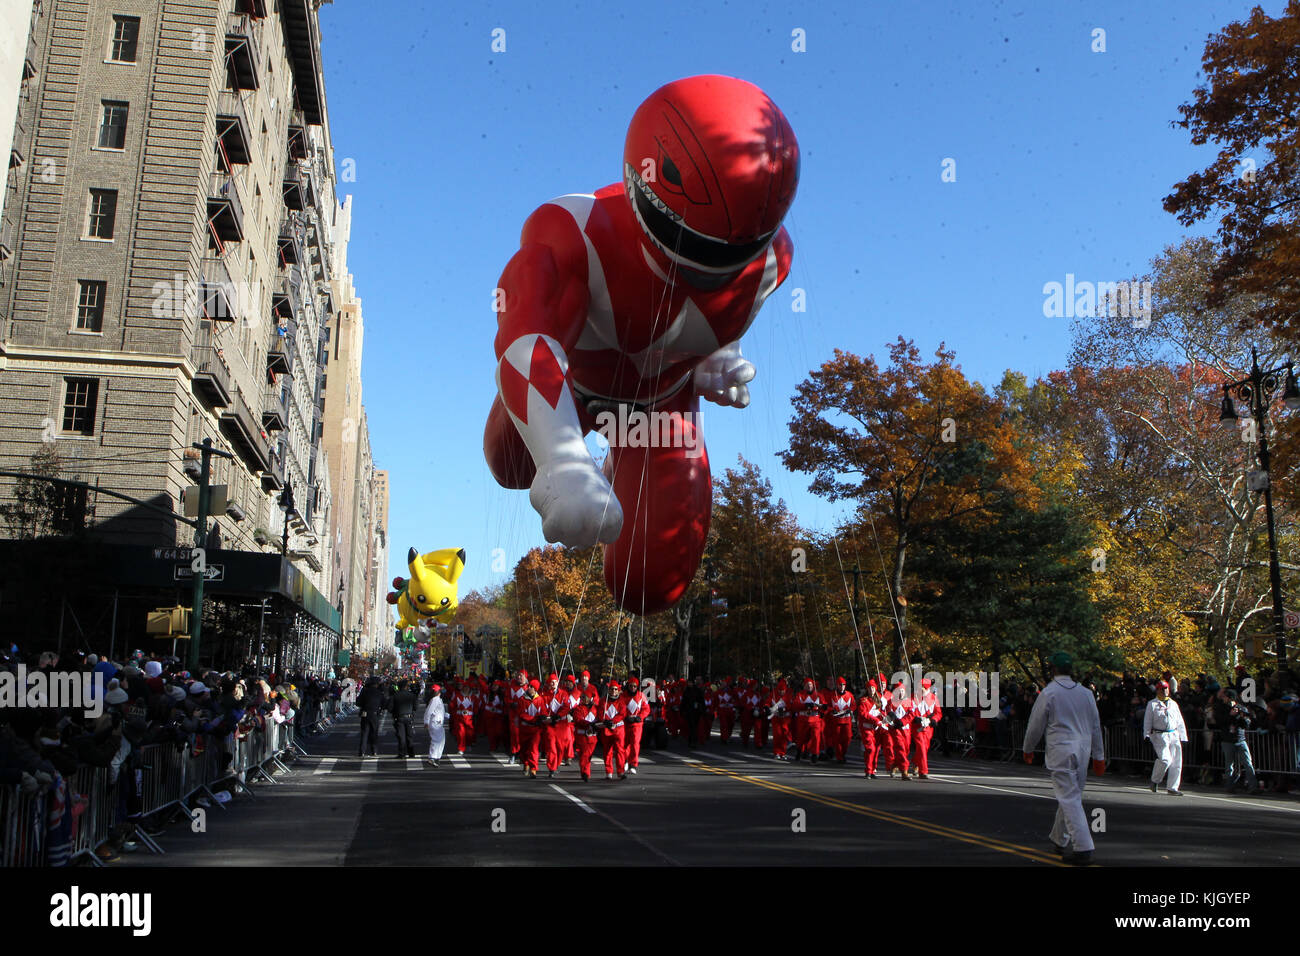 New York, NY, USA. 23 Nov, 2017. rot Mighty morphin Power Ranger ballon Thanksgiving Tag der 91st jährlichen Stockbild